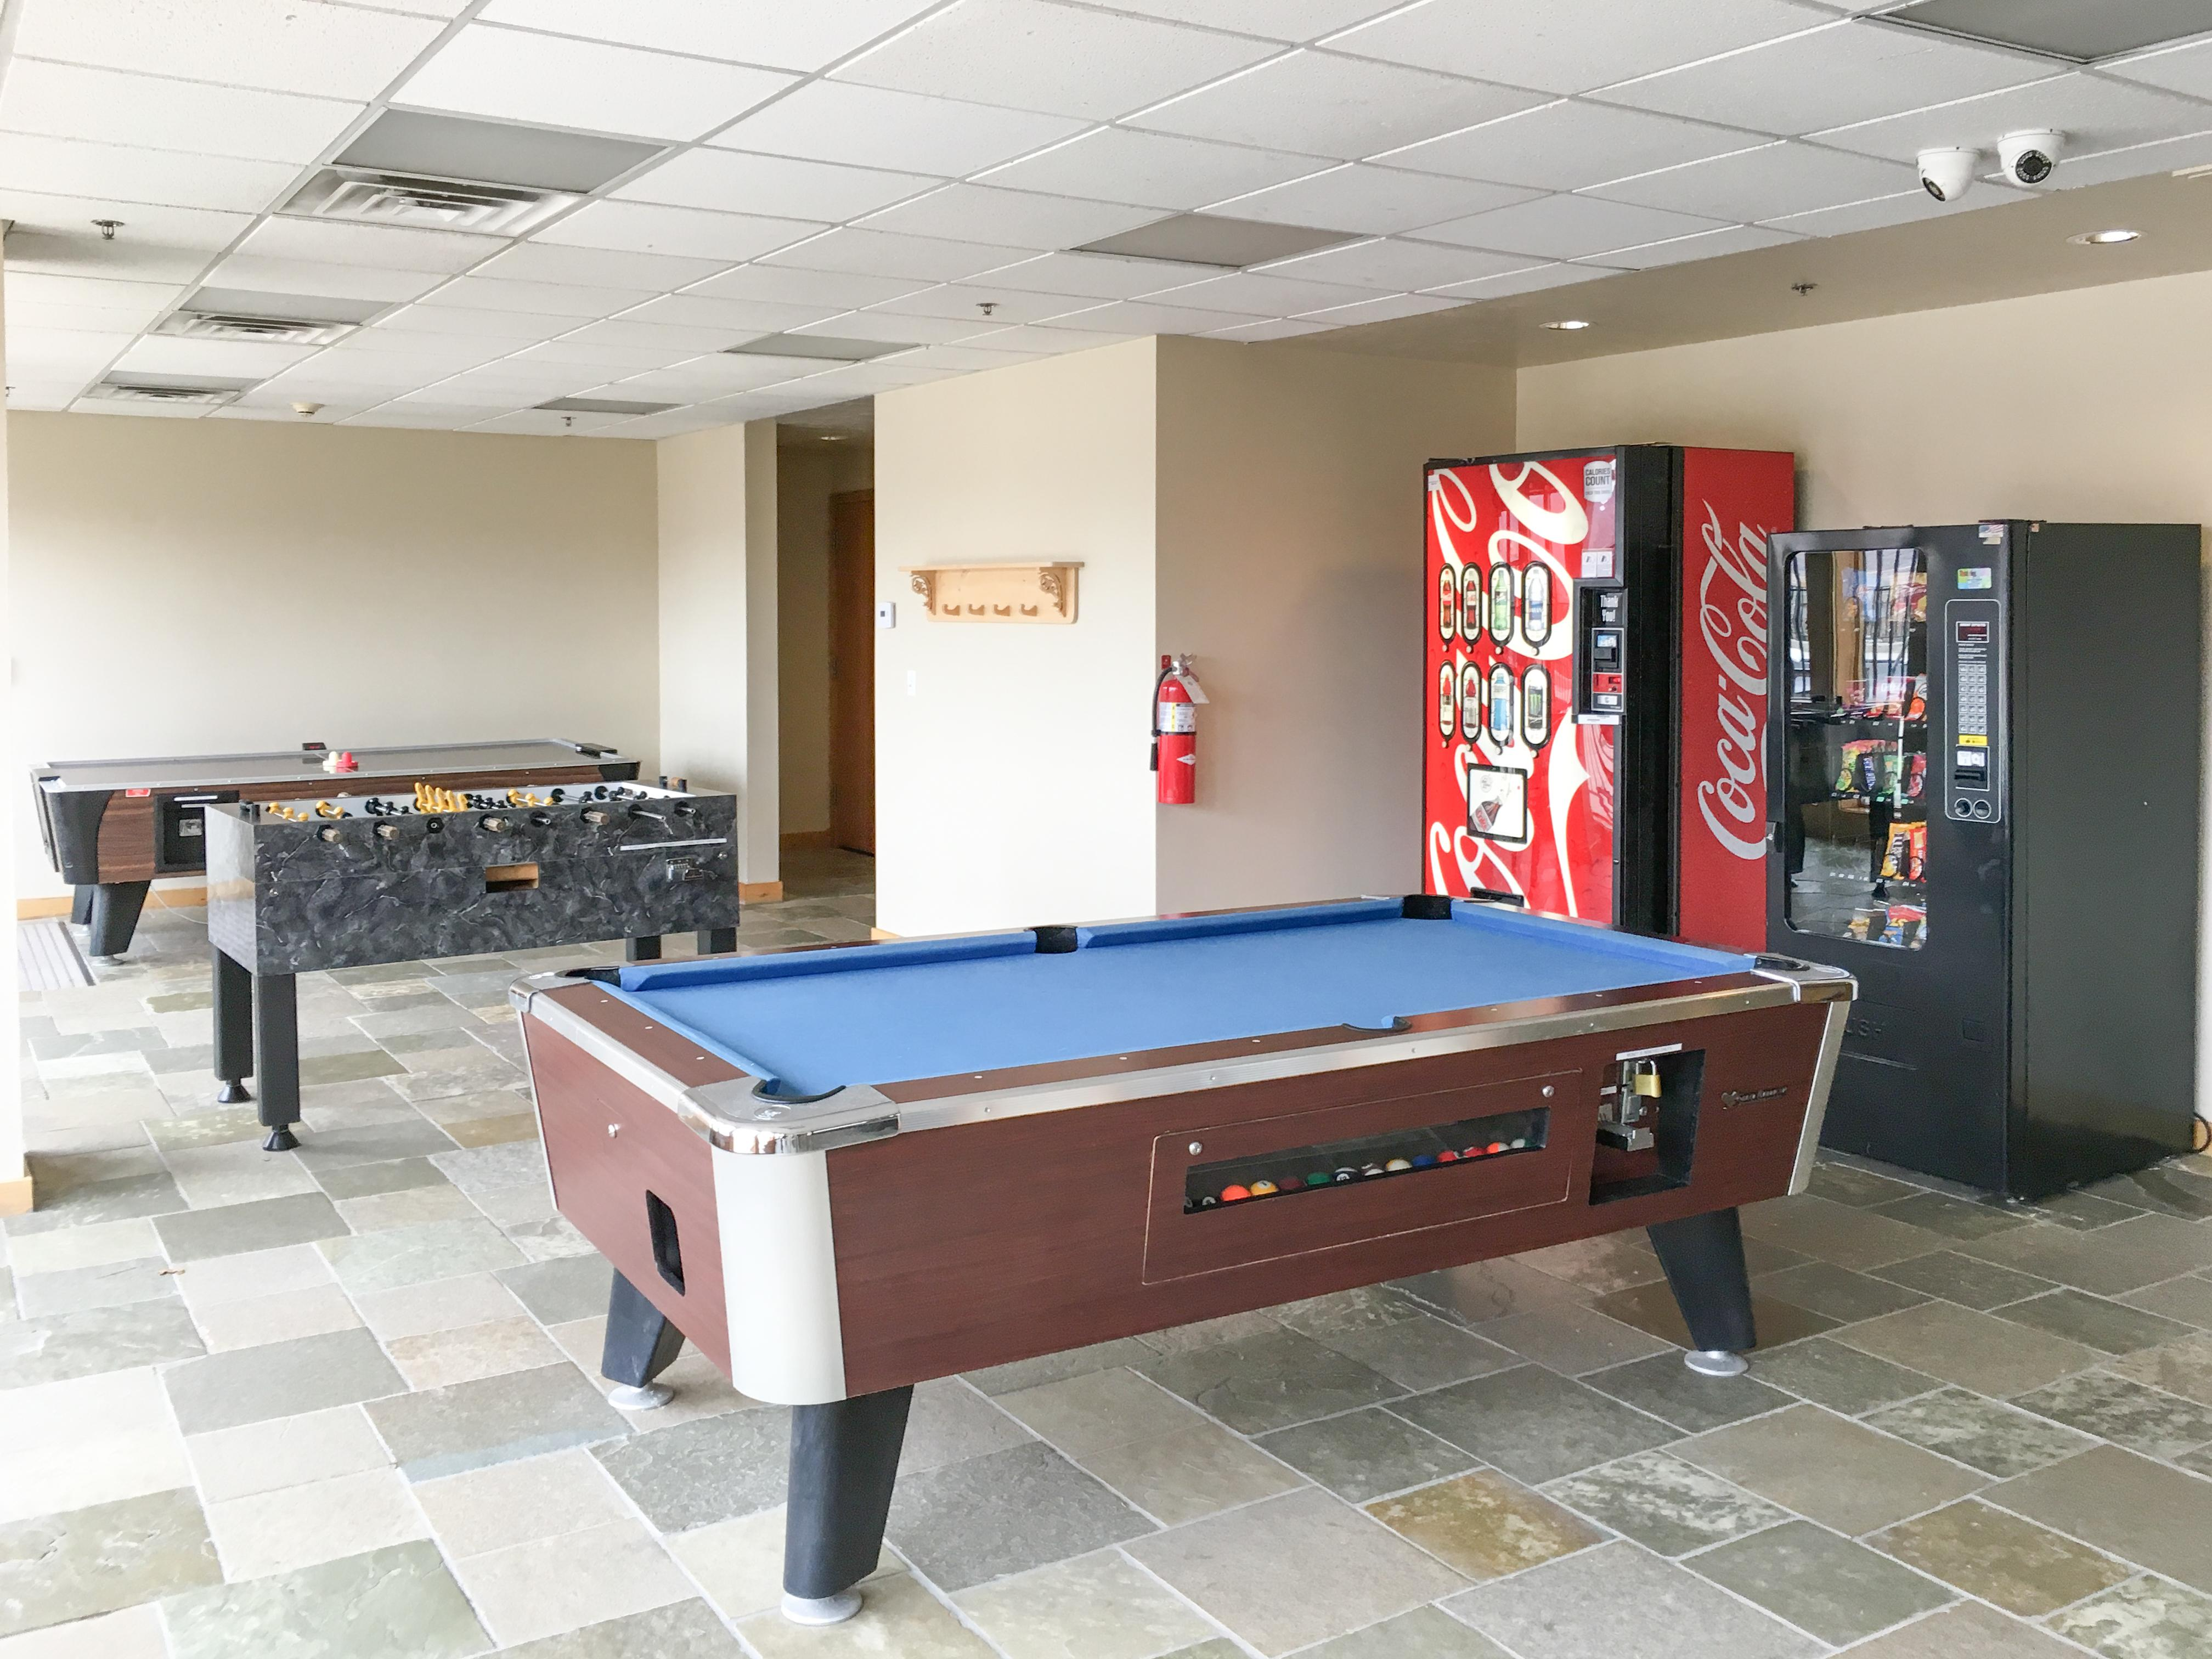 A fun game room includes several pool tables and a foosball table.